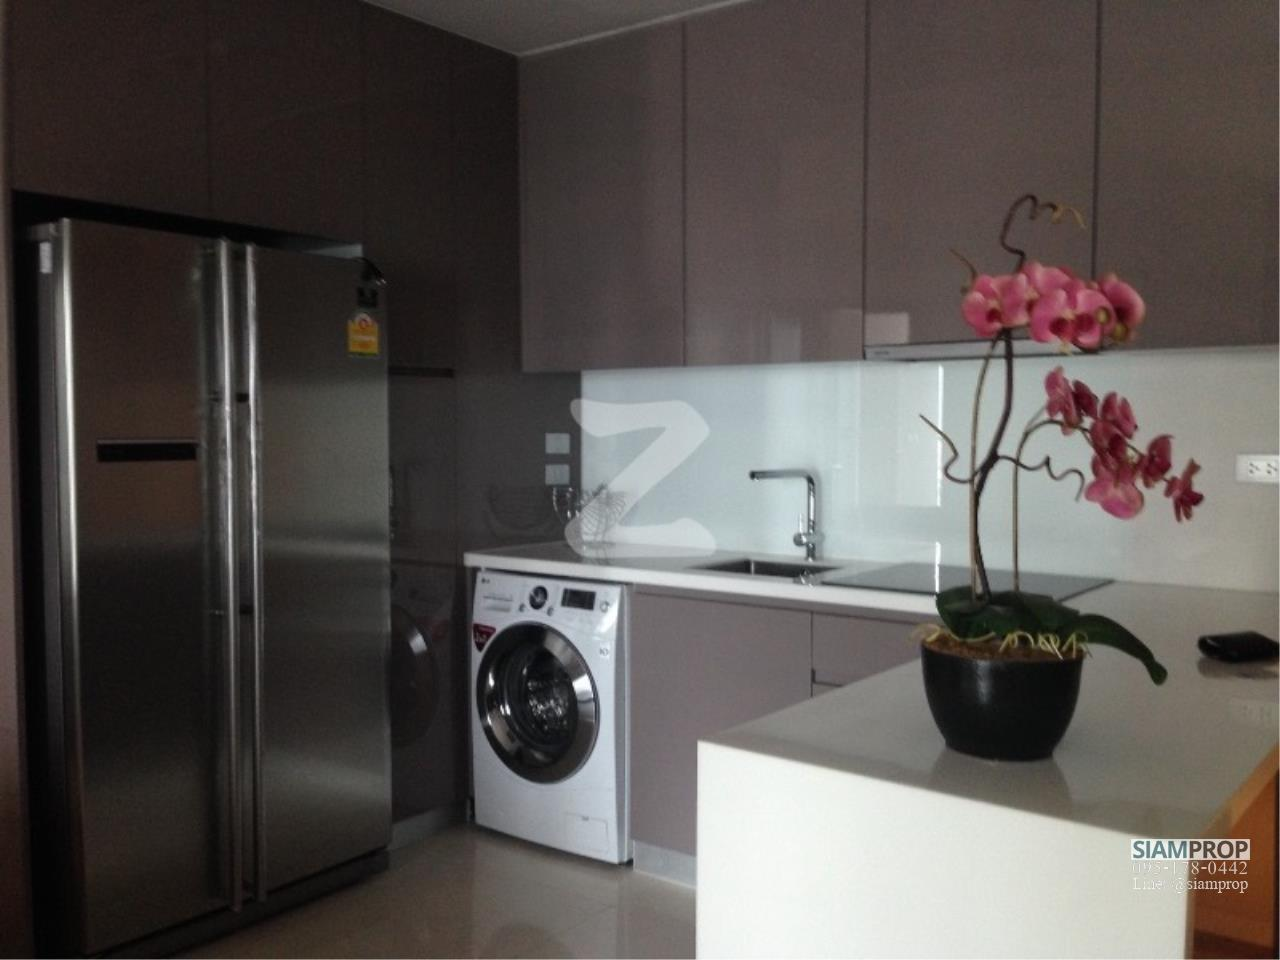 Siam Prop Agency's Hyde Sukhumvit 13 Condo for Rent, 3 bedrooms Rent 80,000 Baht/month 2